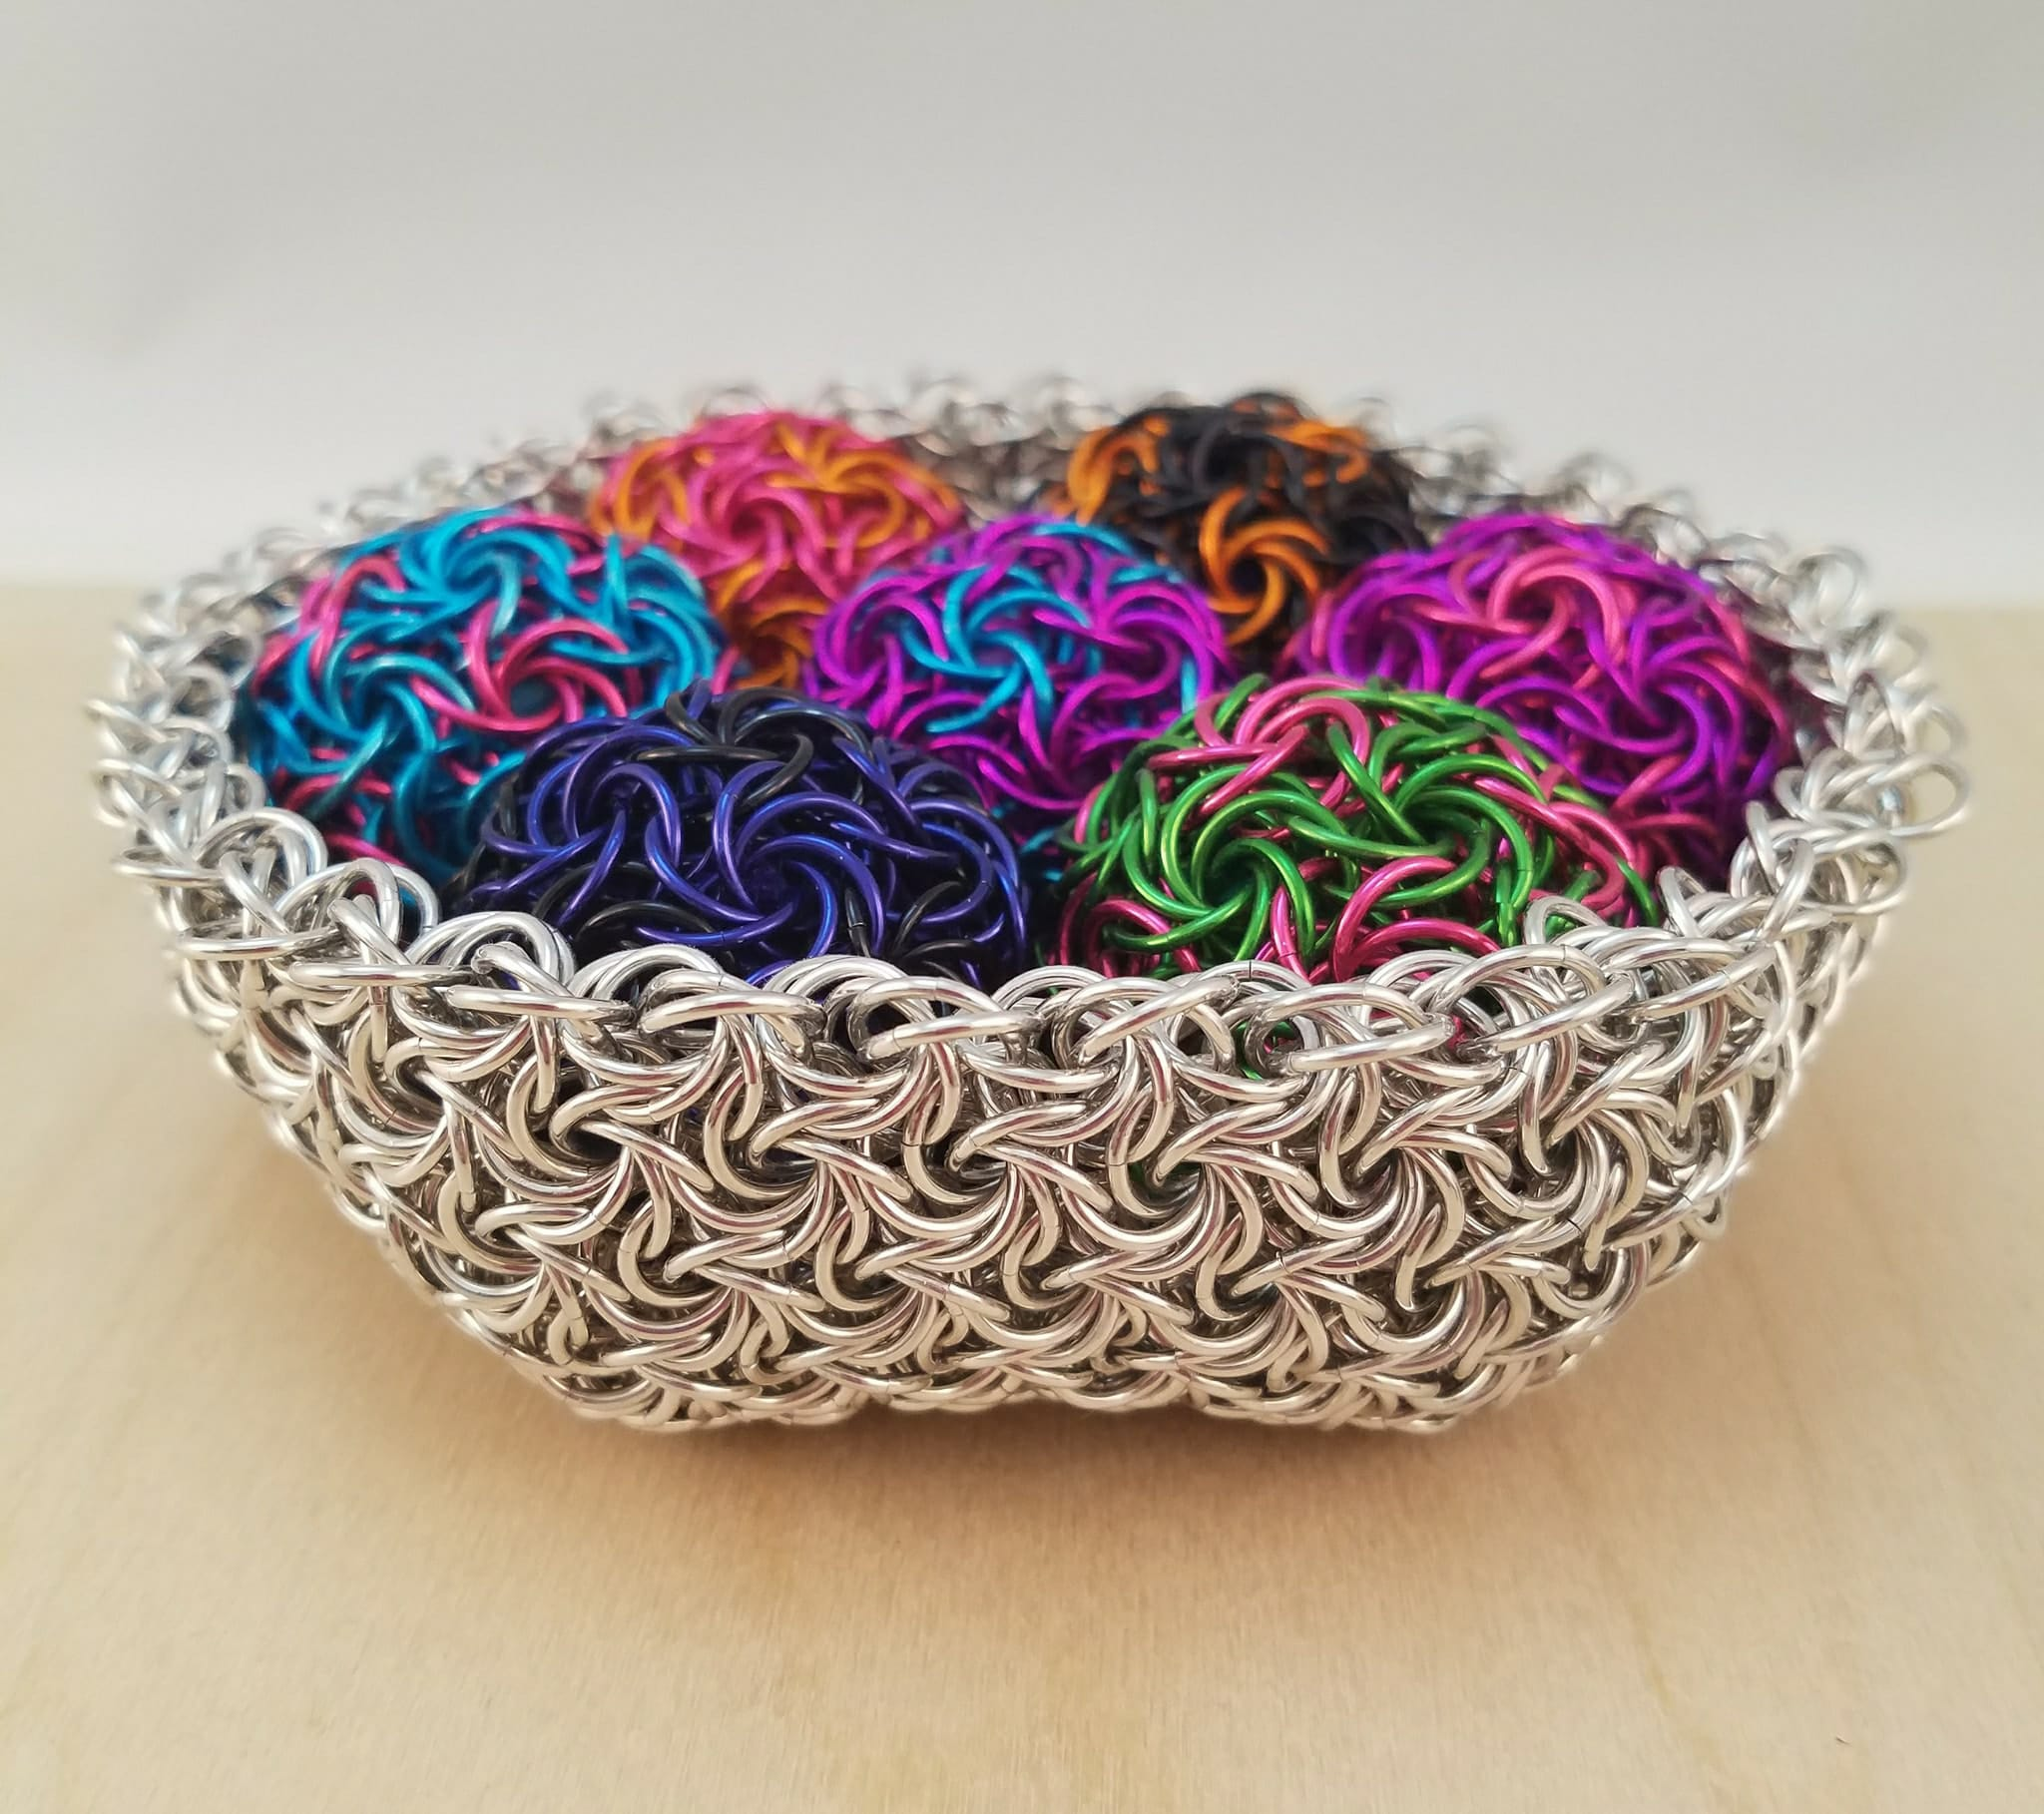 aluminum moorish rose basket with colorful moorish rose balls by lisa ellis